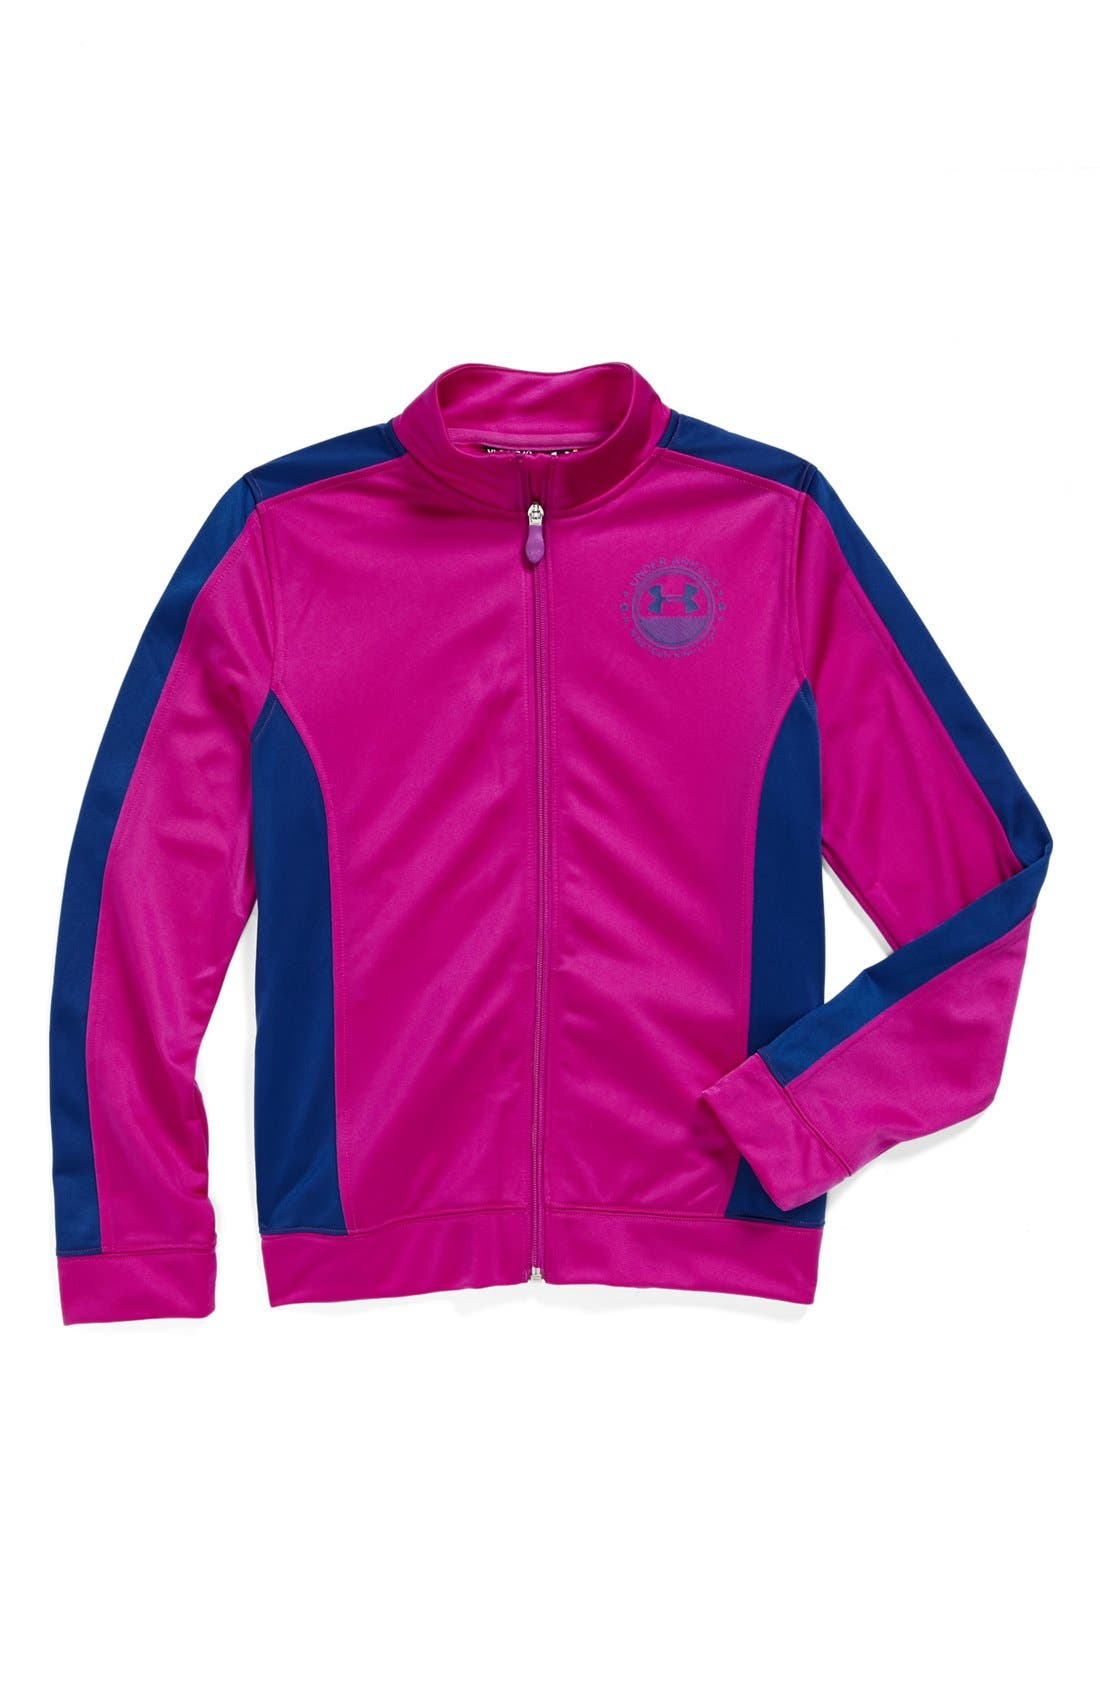 Alternate Image 1 Selected - Under Armour 'Icon' Track Jacket (Big Girls)